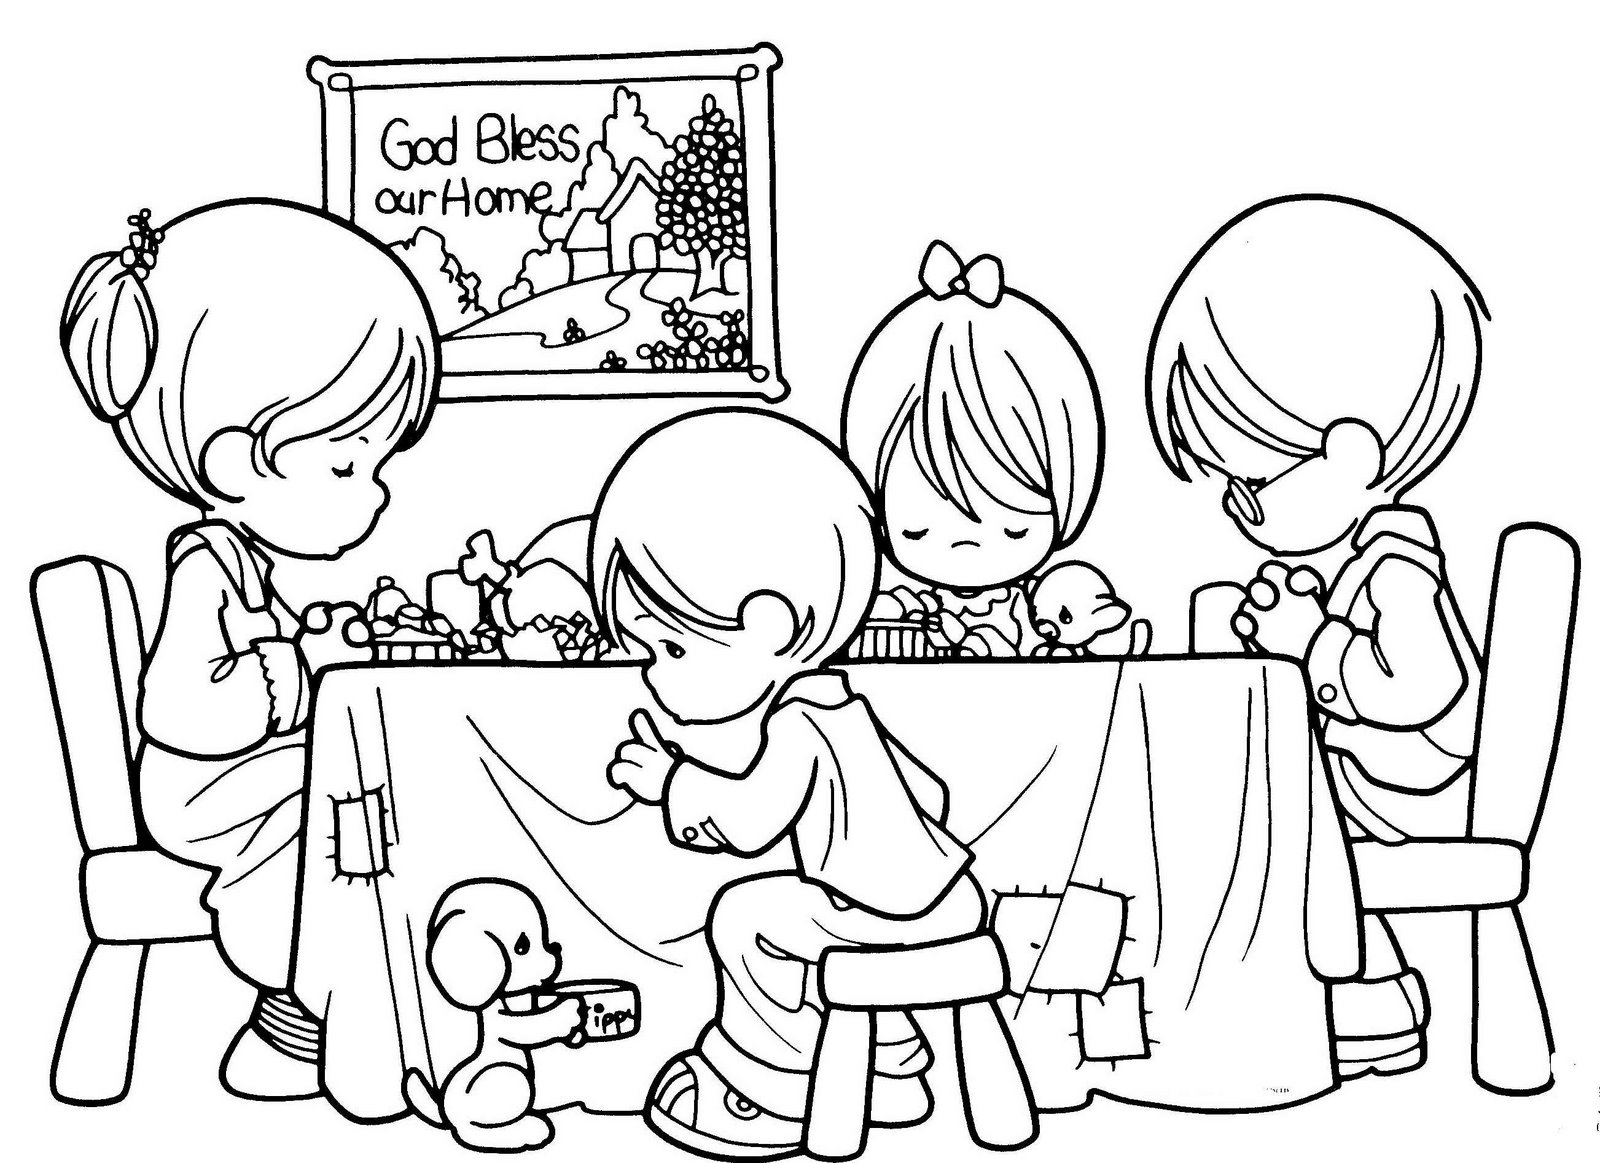 Free Printable Christian Coloring Pages For Kids